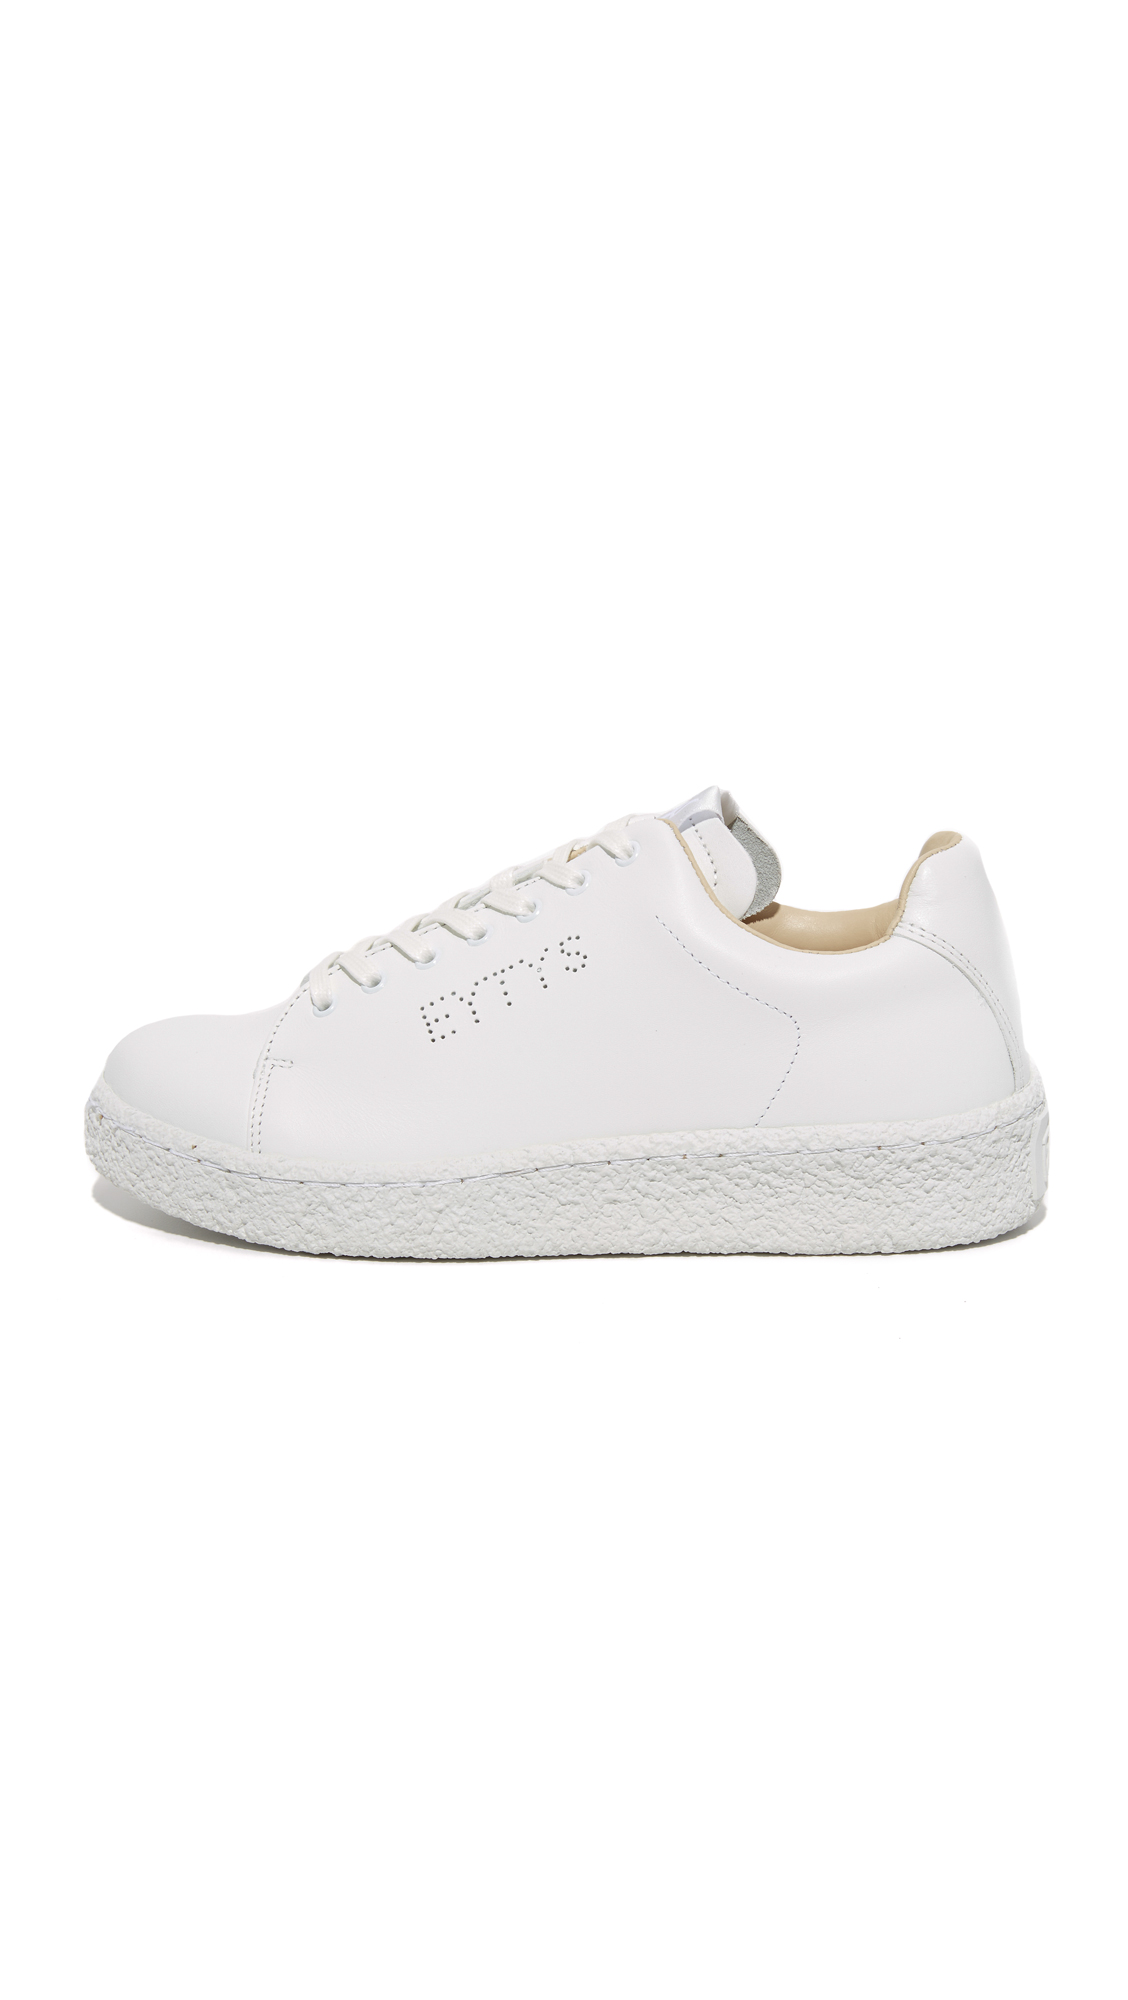 bb84e85500c Eytys Ace Leather Sneakers